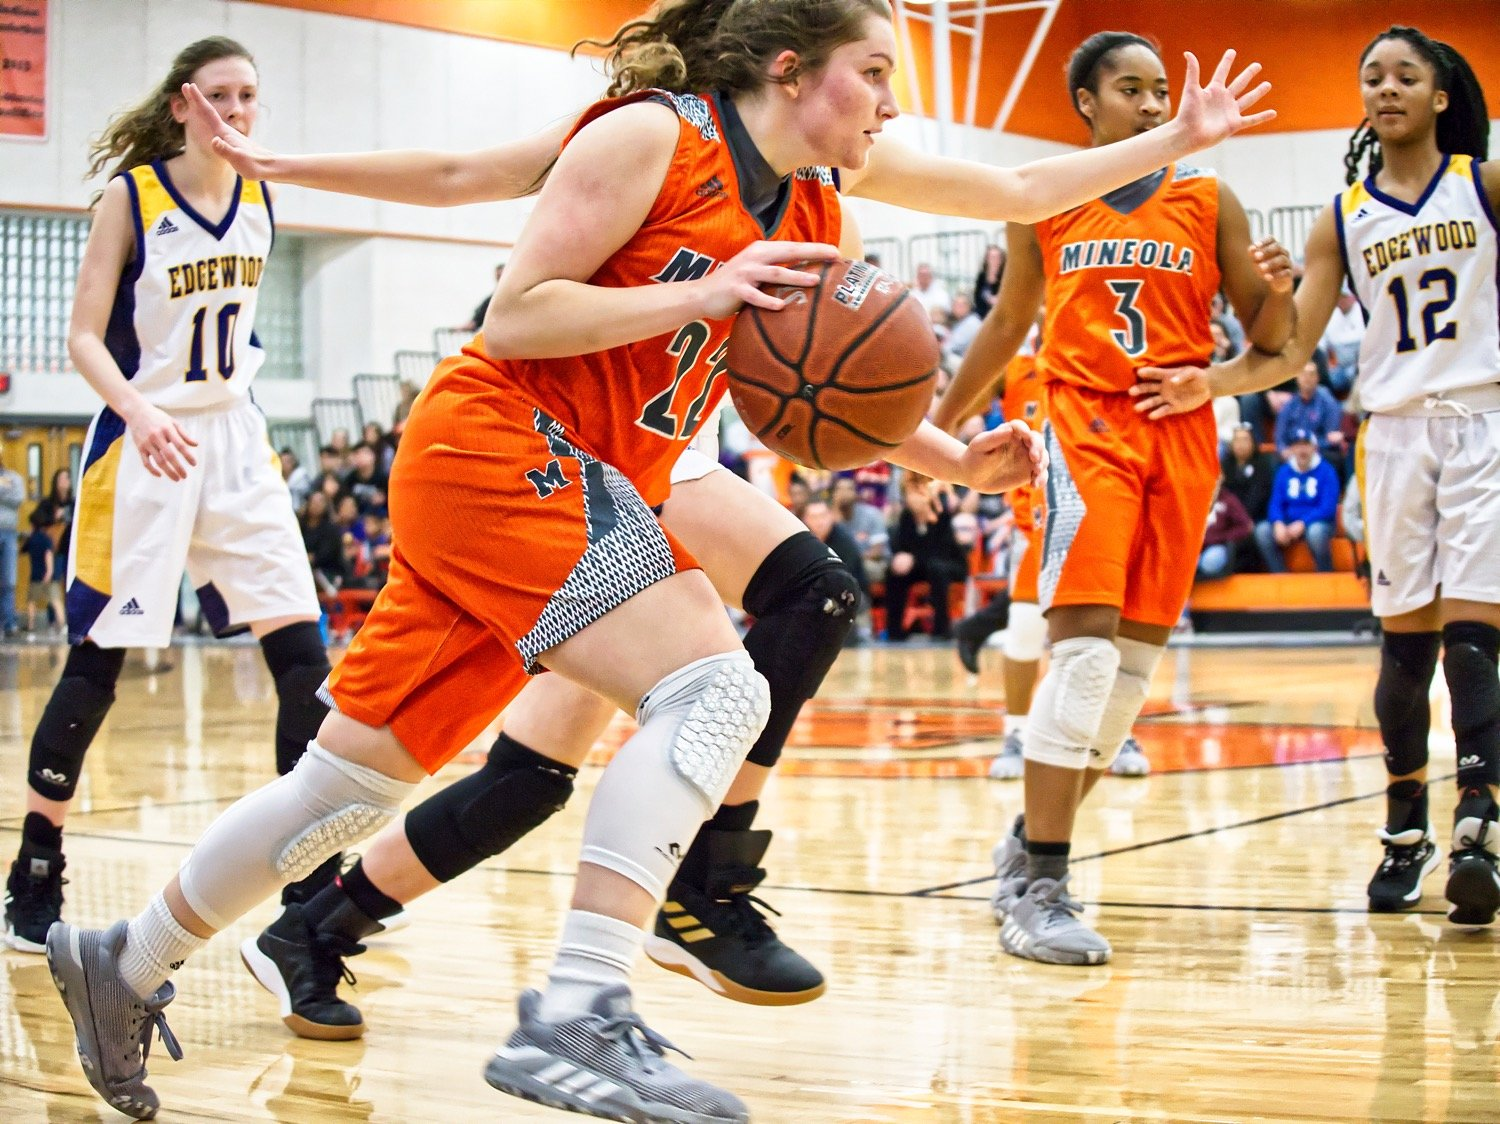 Driving past an Edgewood defender in Grand Saline, Cyndi Butler contributed to a Lady Jacket win, despite being ill, giving Mineola a district championship and propelling them into the playoffs.